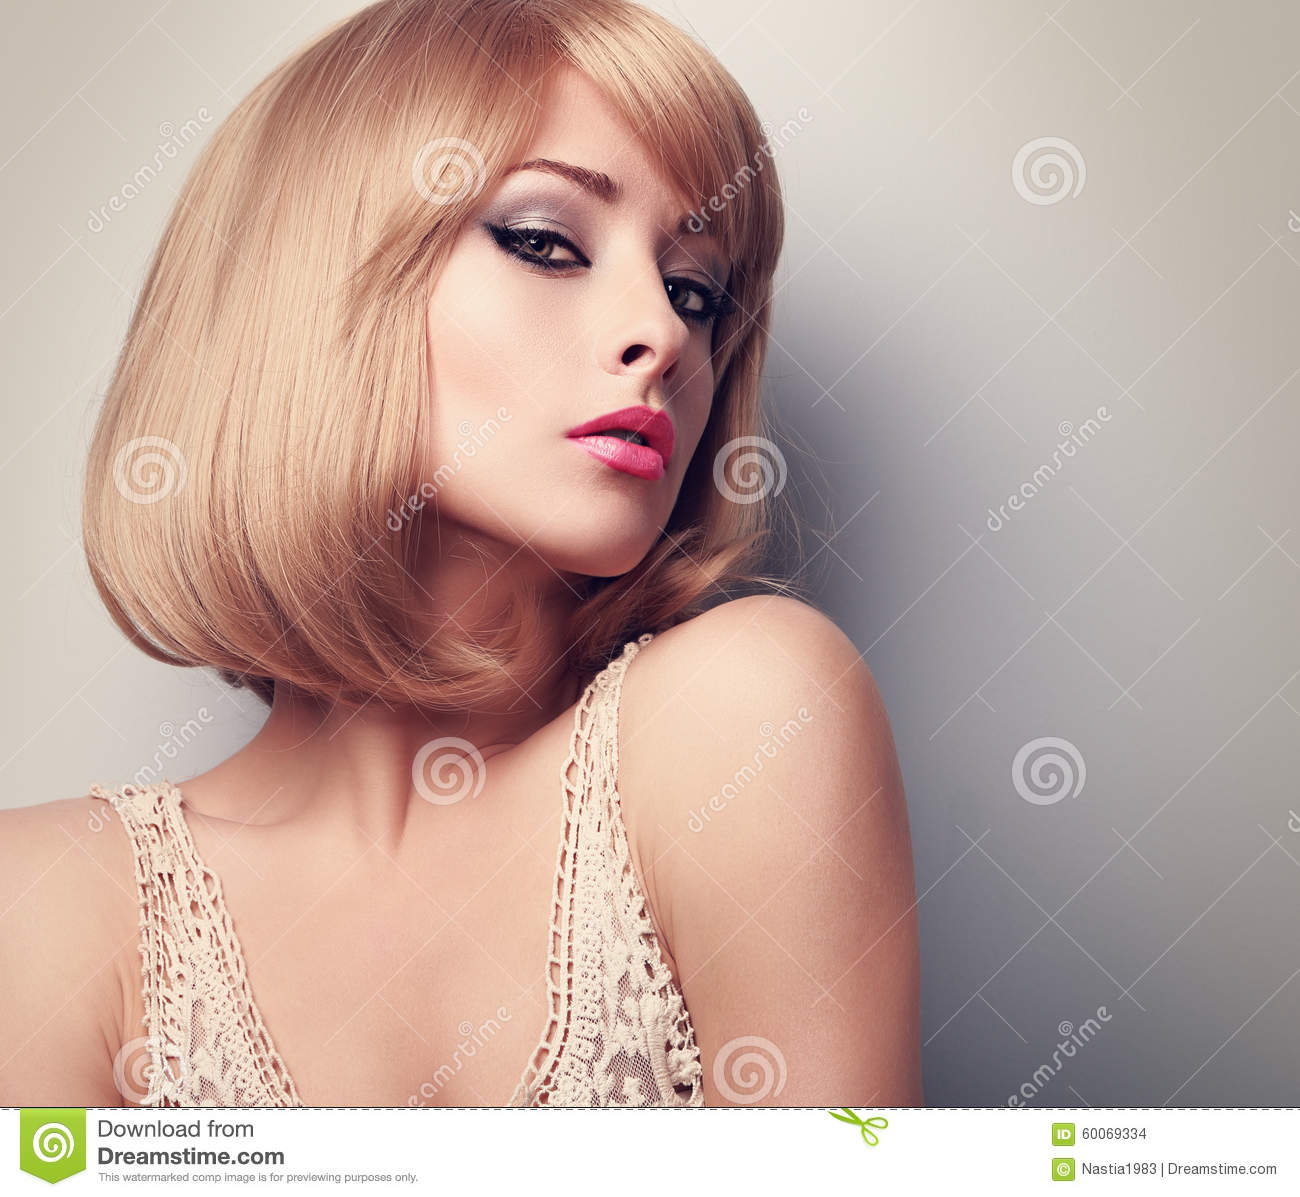 Beautiful Girl With Short Blond Hair Royalty Free Stock